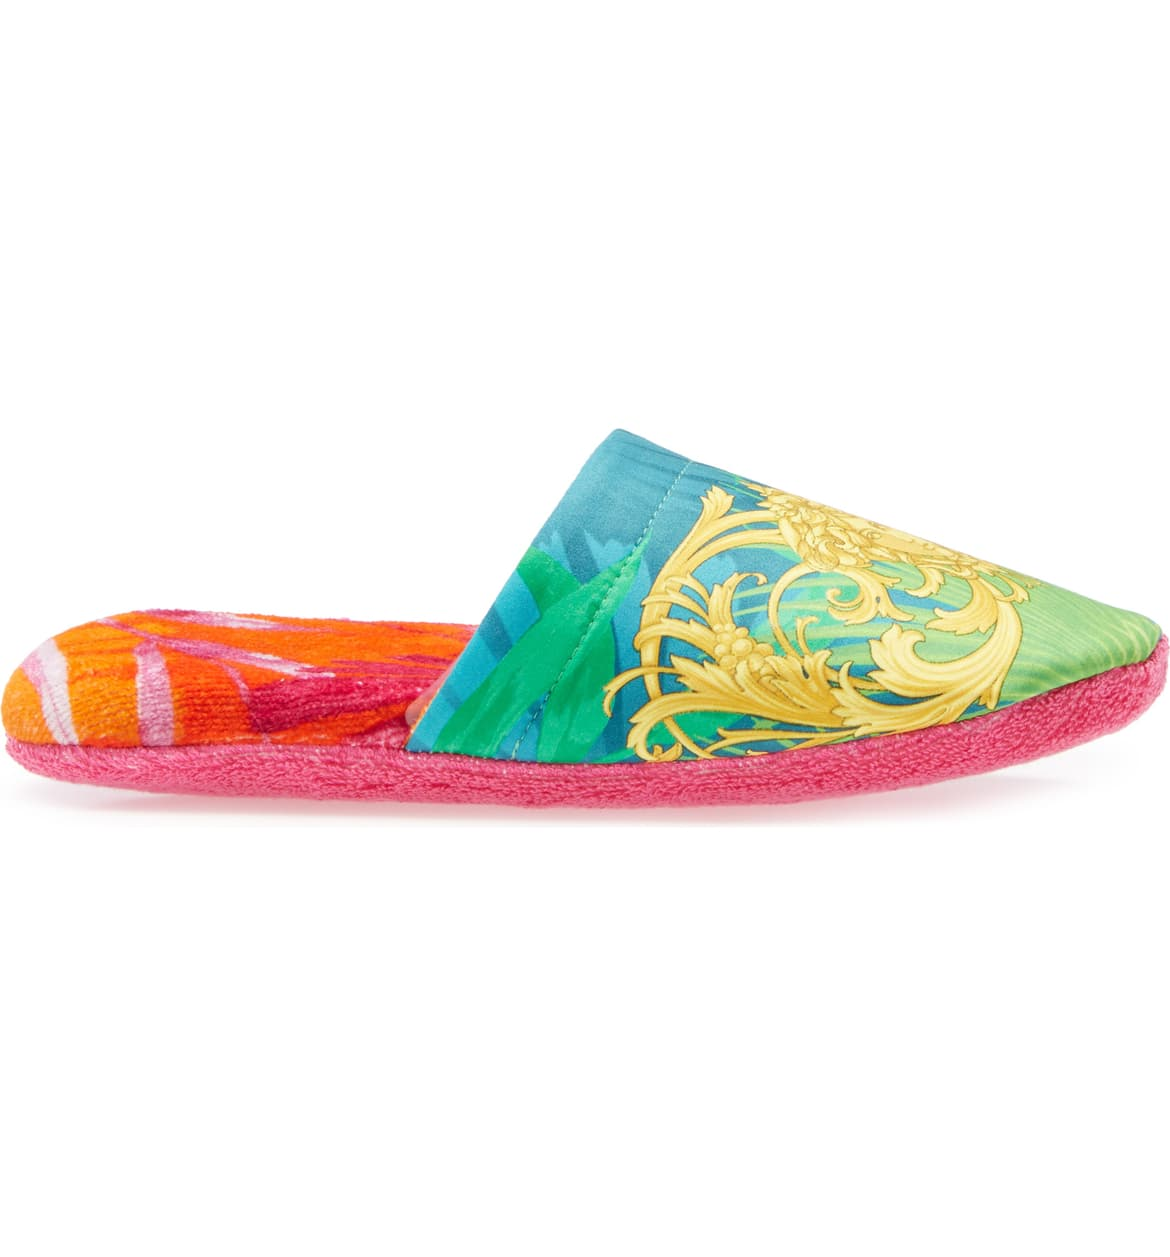 versace pink slippers